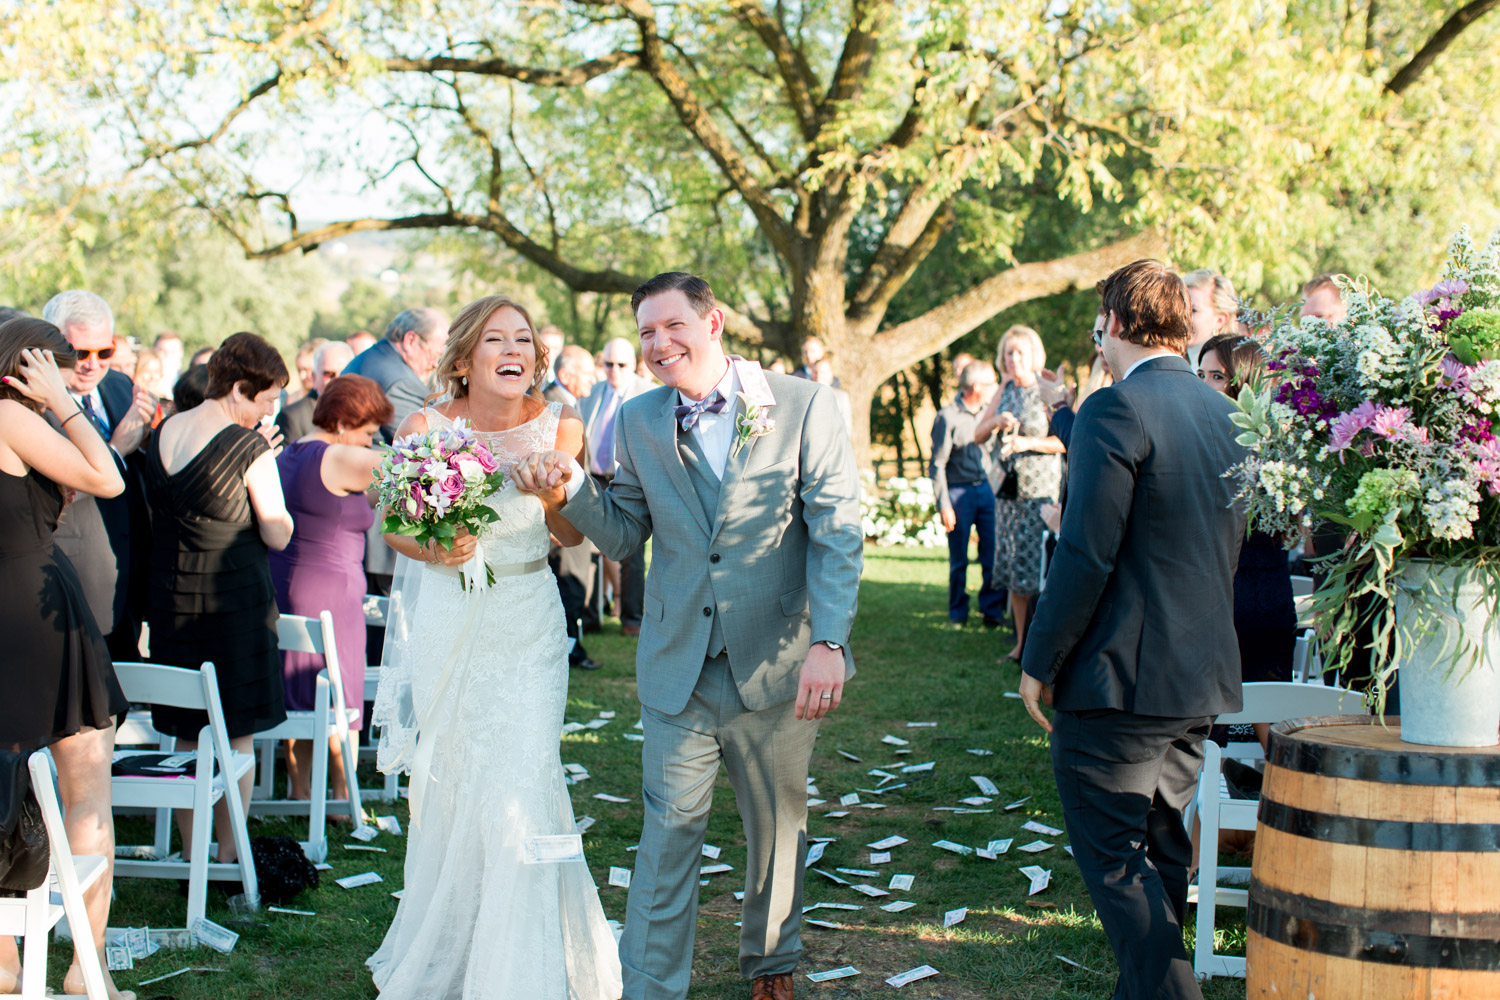 Bride and groom during money throw walking down the aisle at her wedding ceremony at Walker's Overlook under a large tree, garden wedding, Cavin Elizabeth Photography